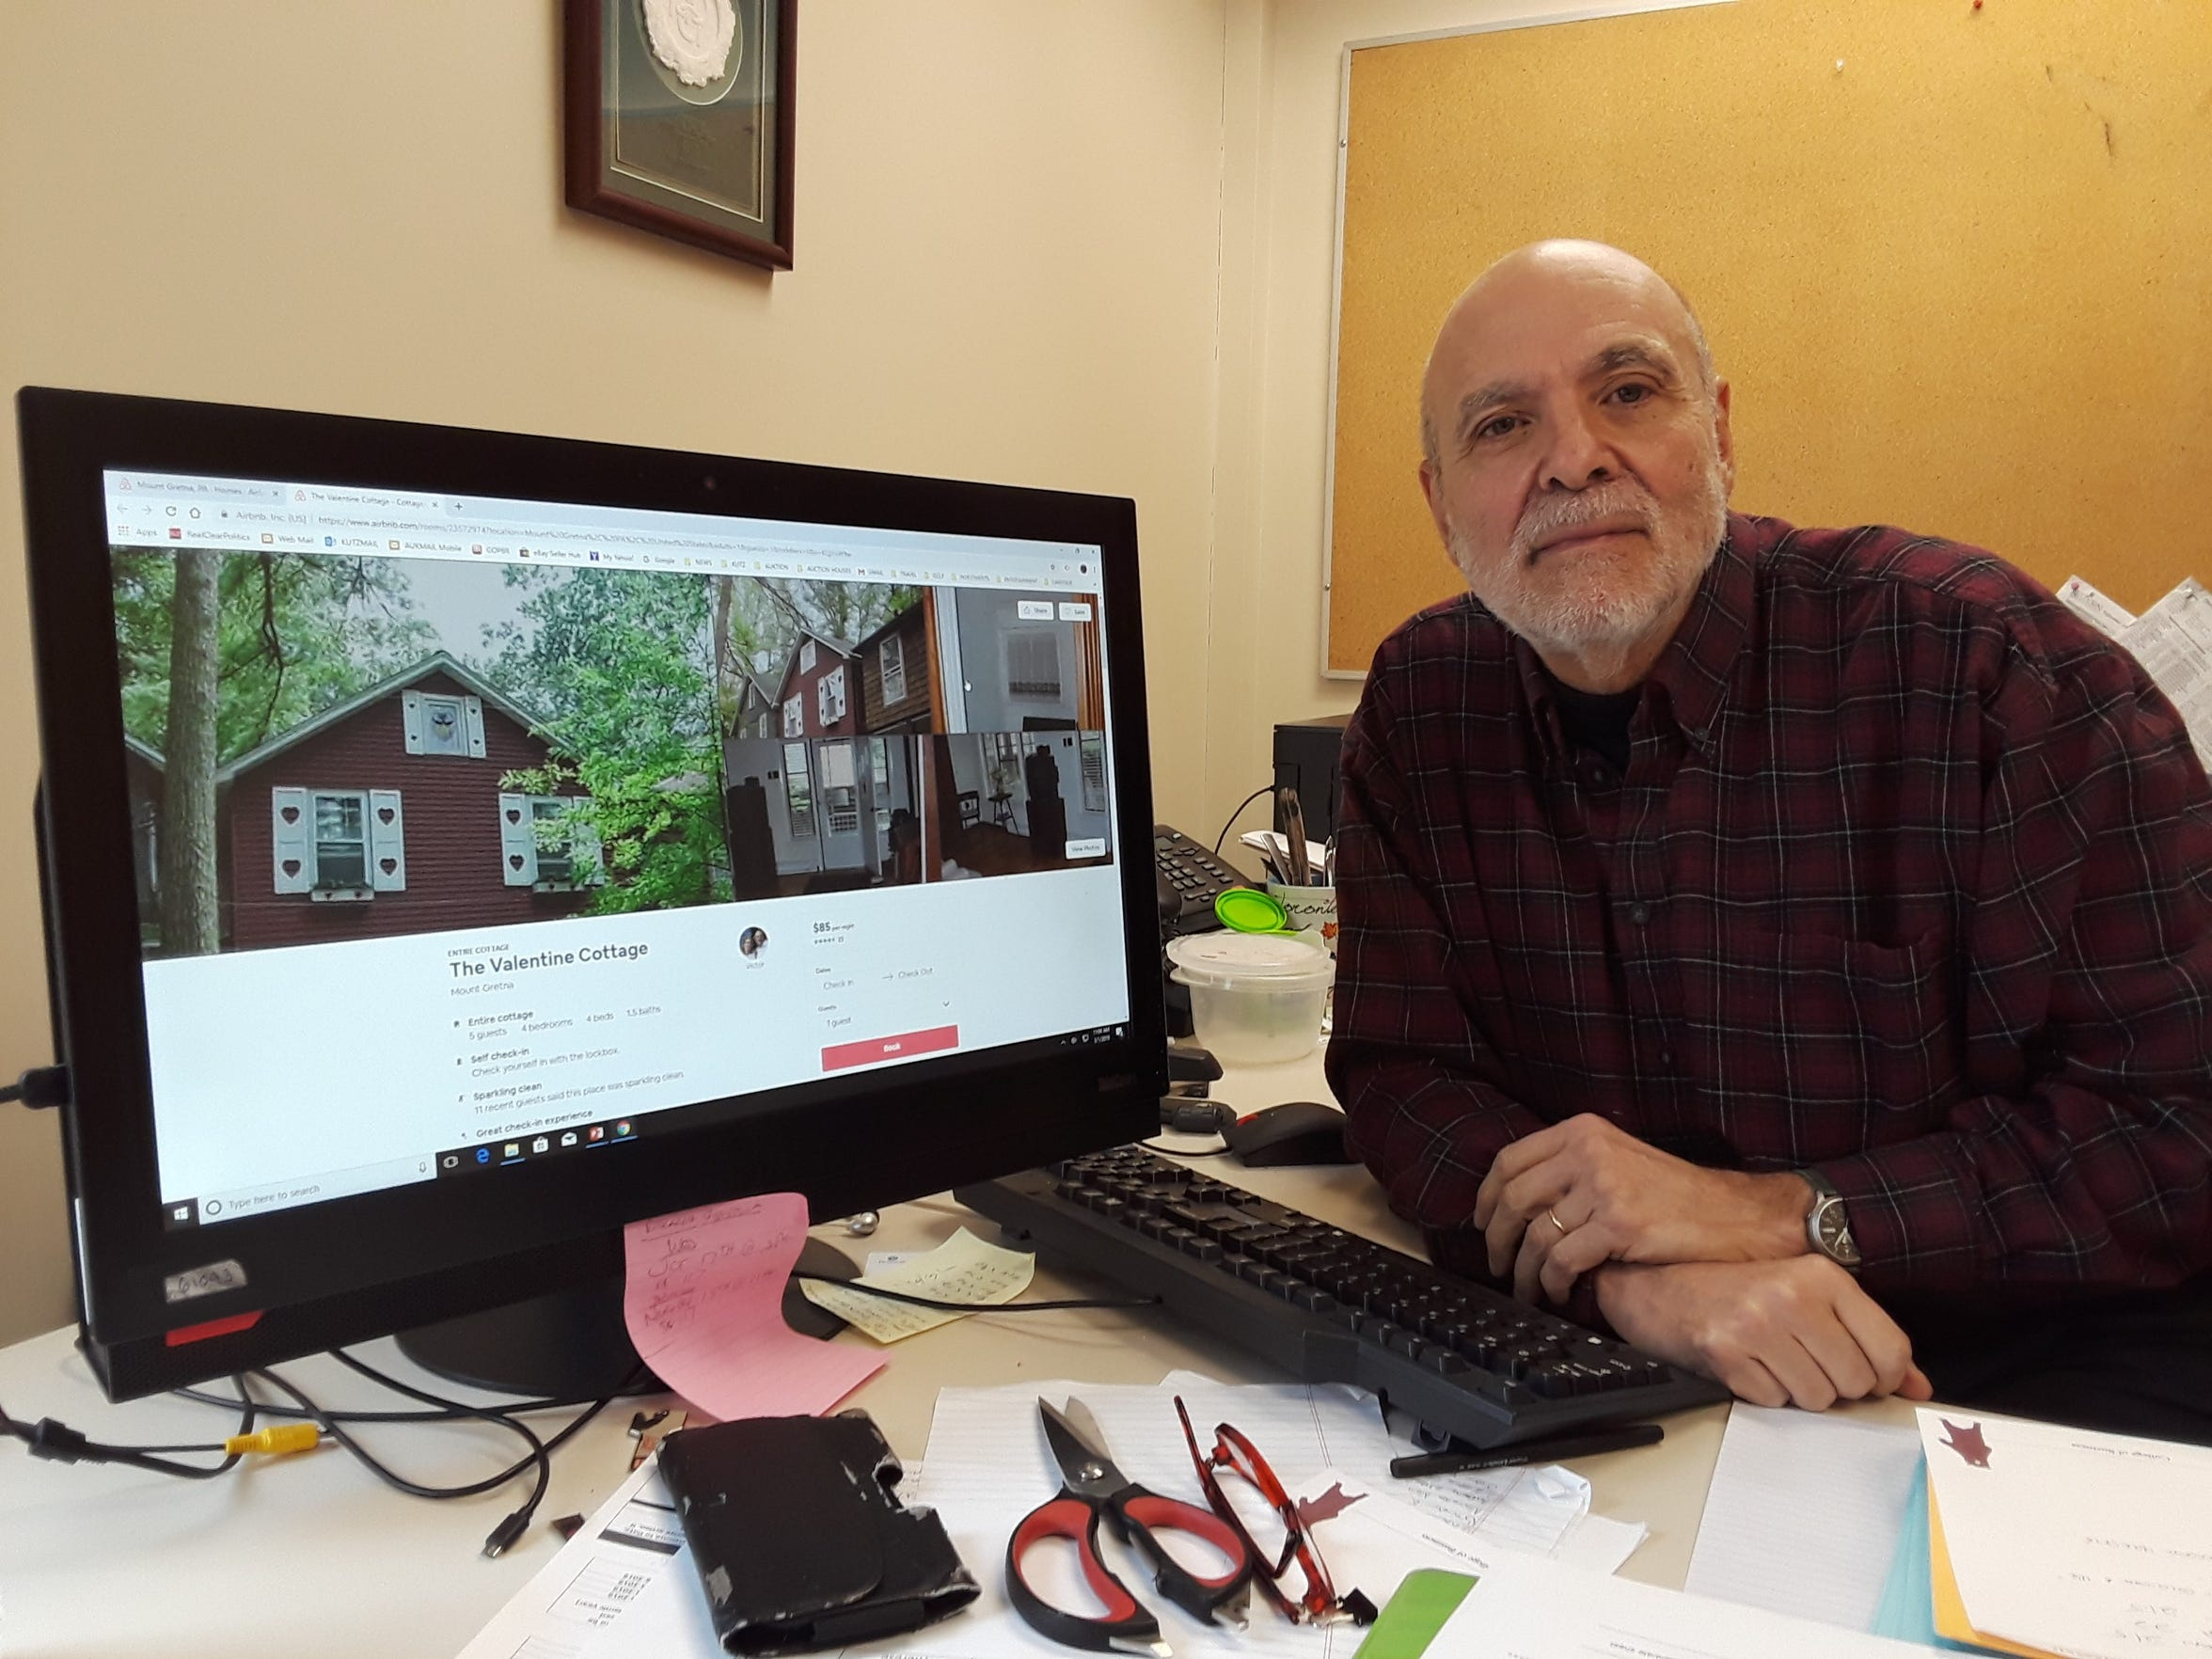 Victor Massad advertises his Valentine Cottage in the Mount Gretna Campmeeting on Airbnb for short-term rentals.